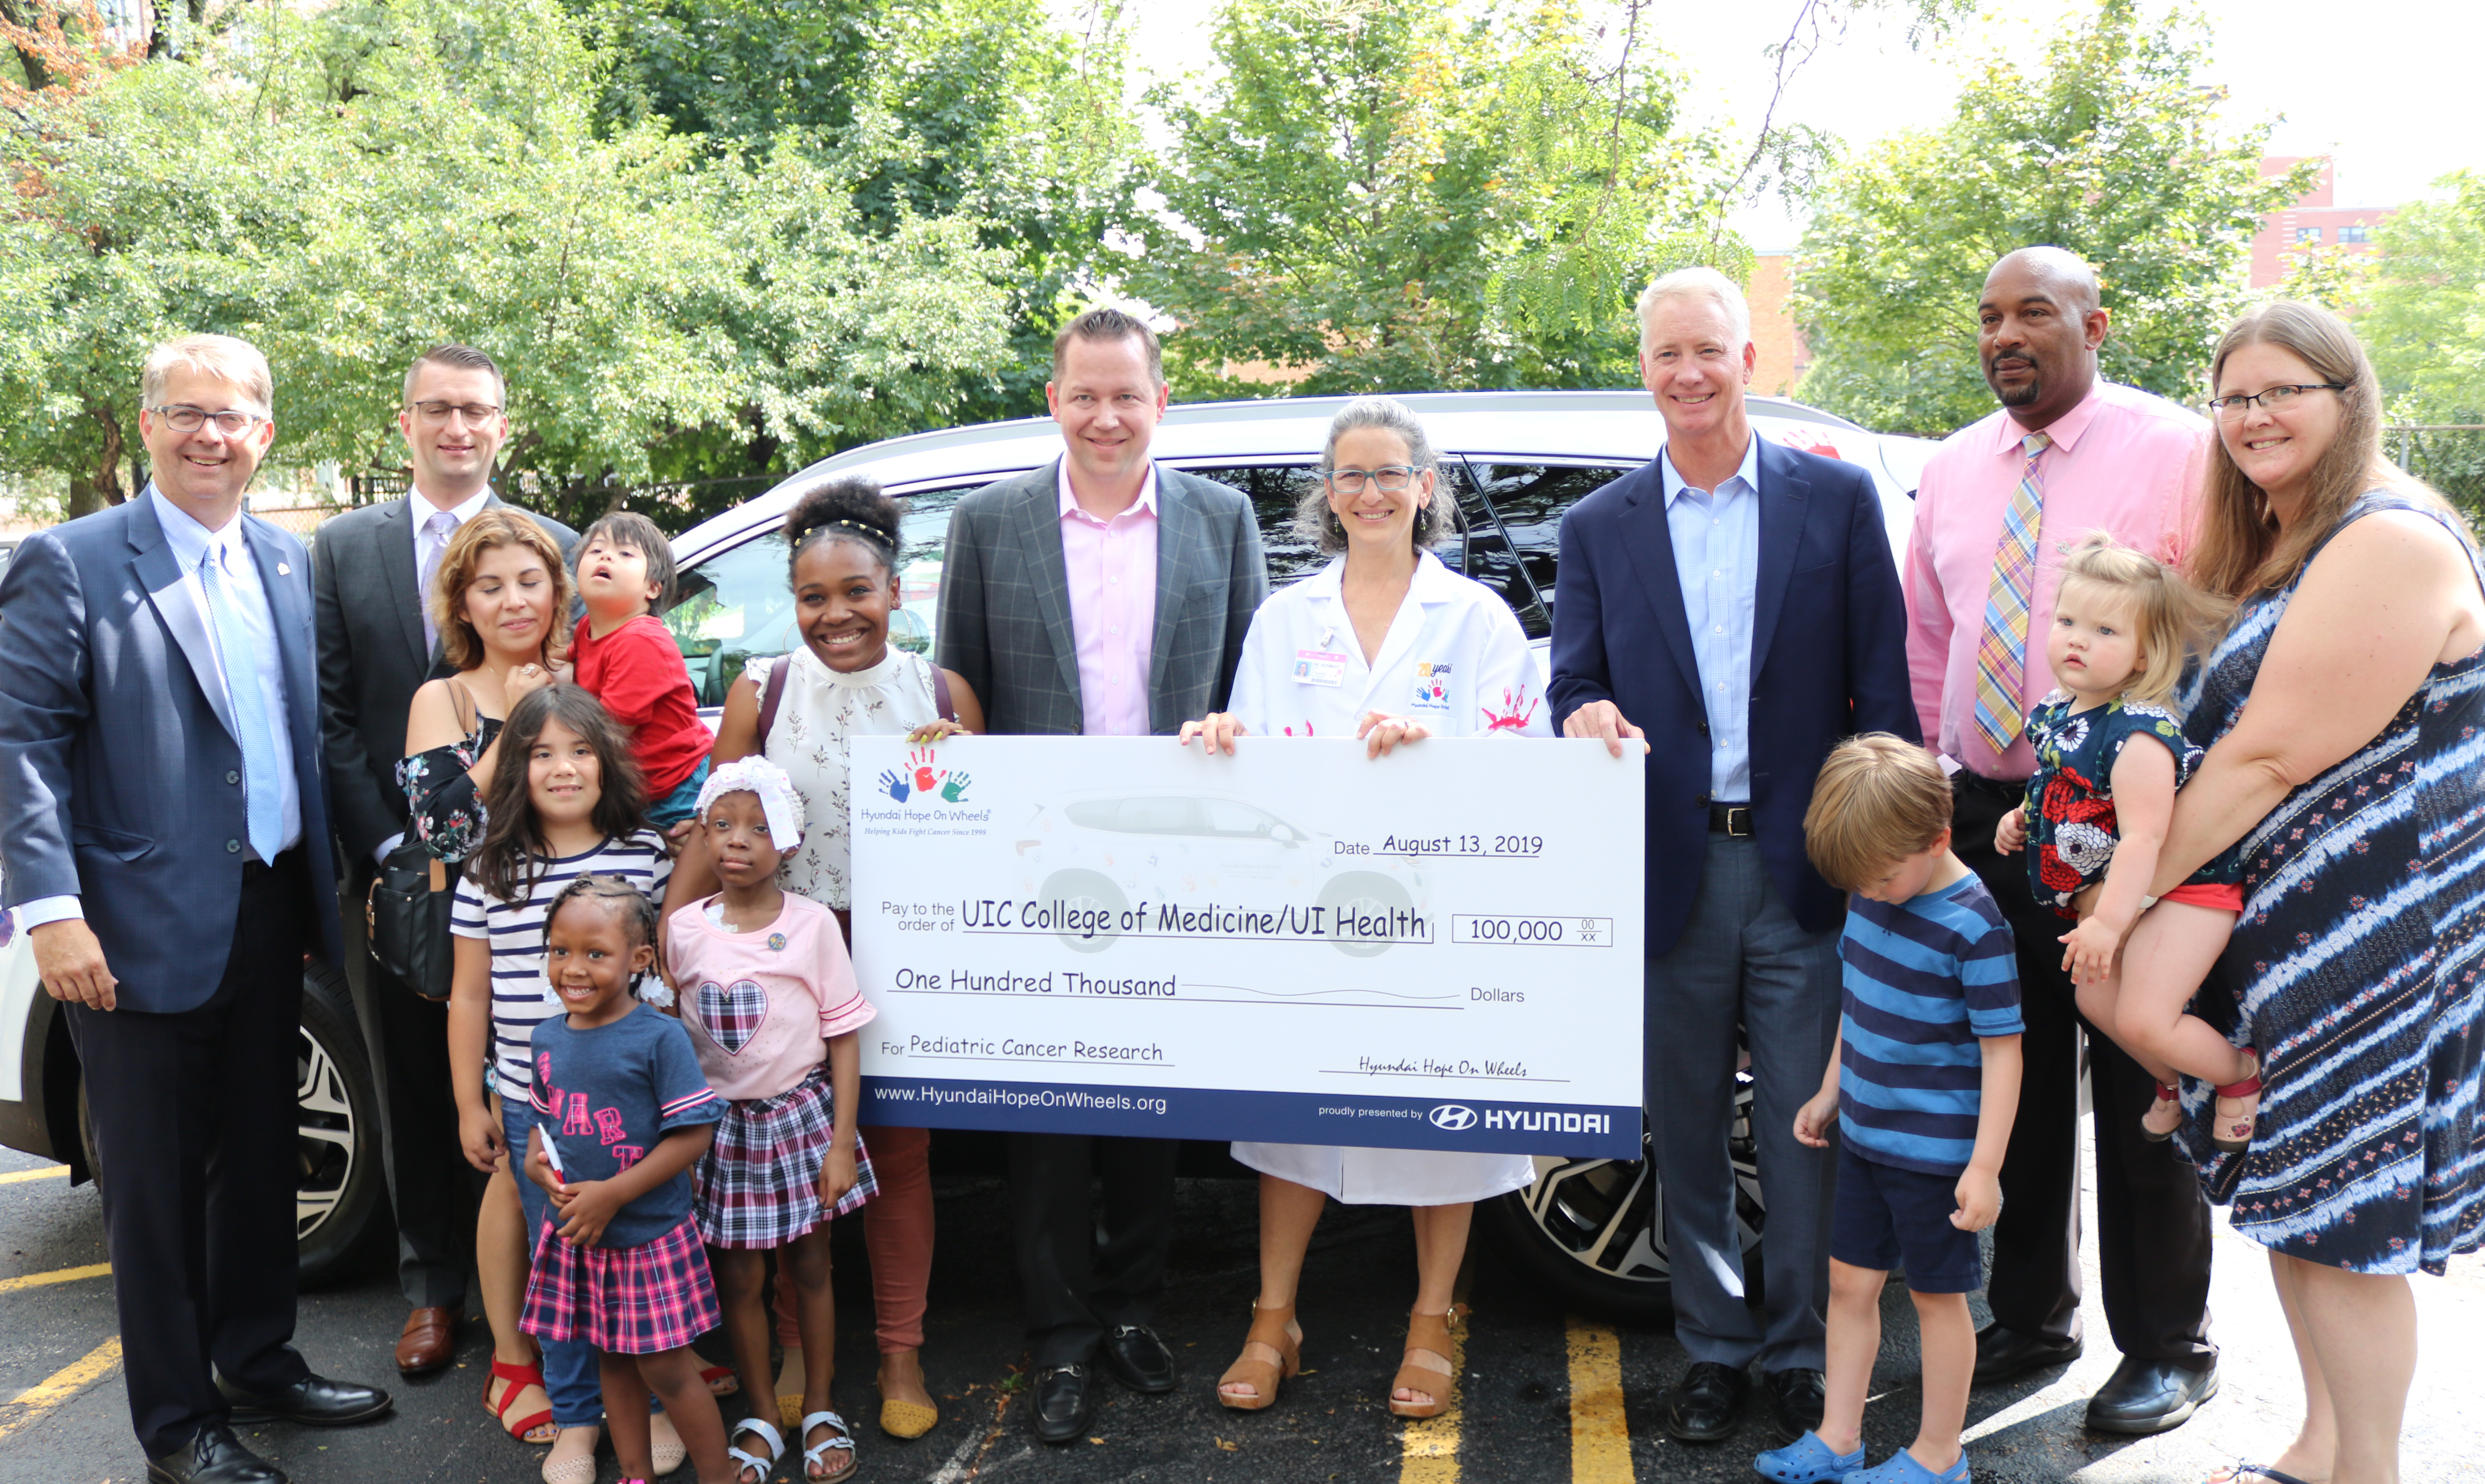 Hyundai bestows grant to fight pediatric cancer to UI Health